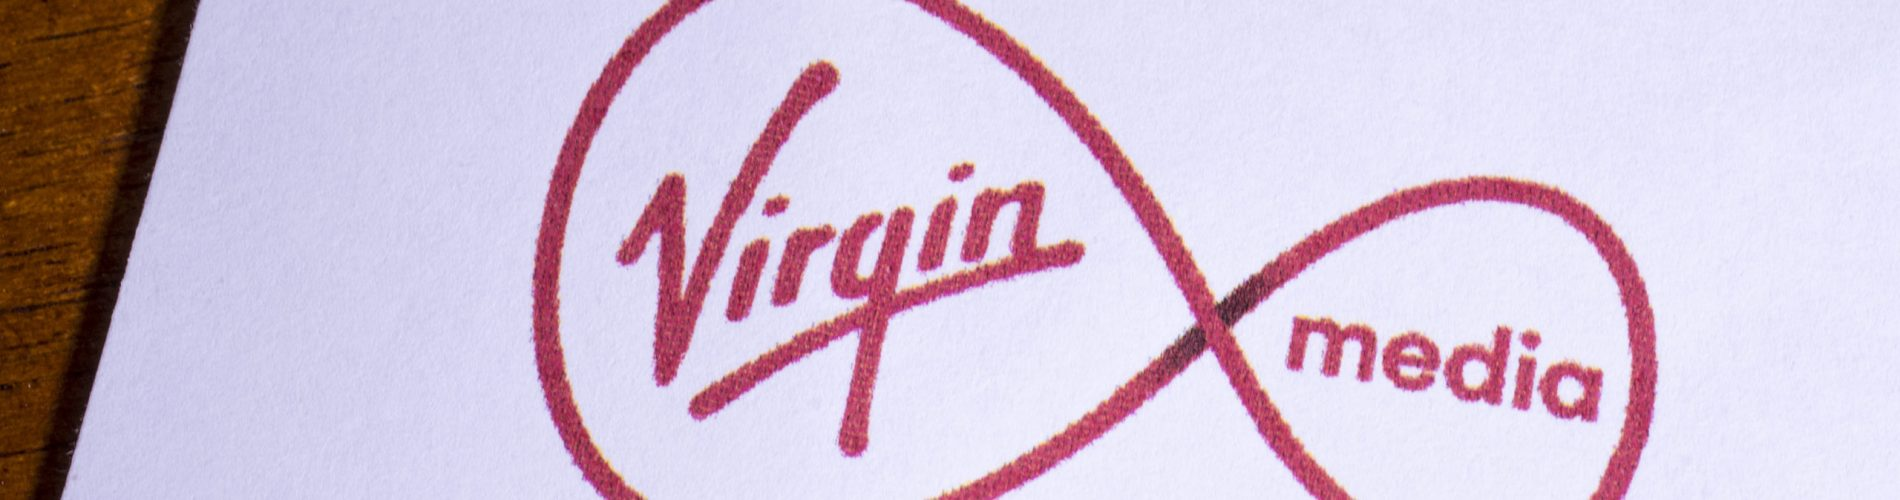 London, UK - May 14th 2019: The logo of Virgin Media Limited, pictured on the top of a letter.  Virgin Media Limited is a company providing telephone, TV and internet services in the UK.